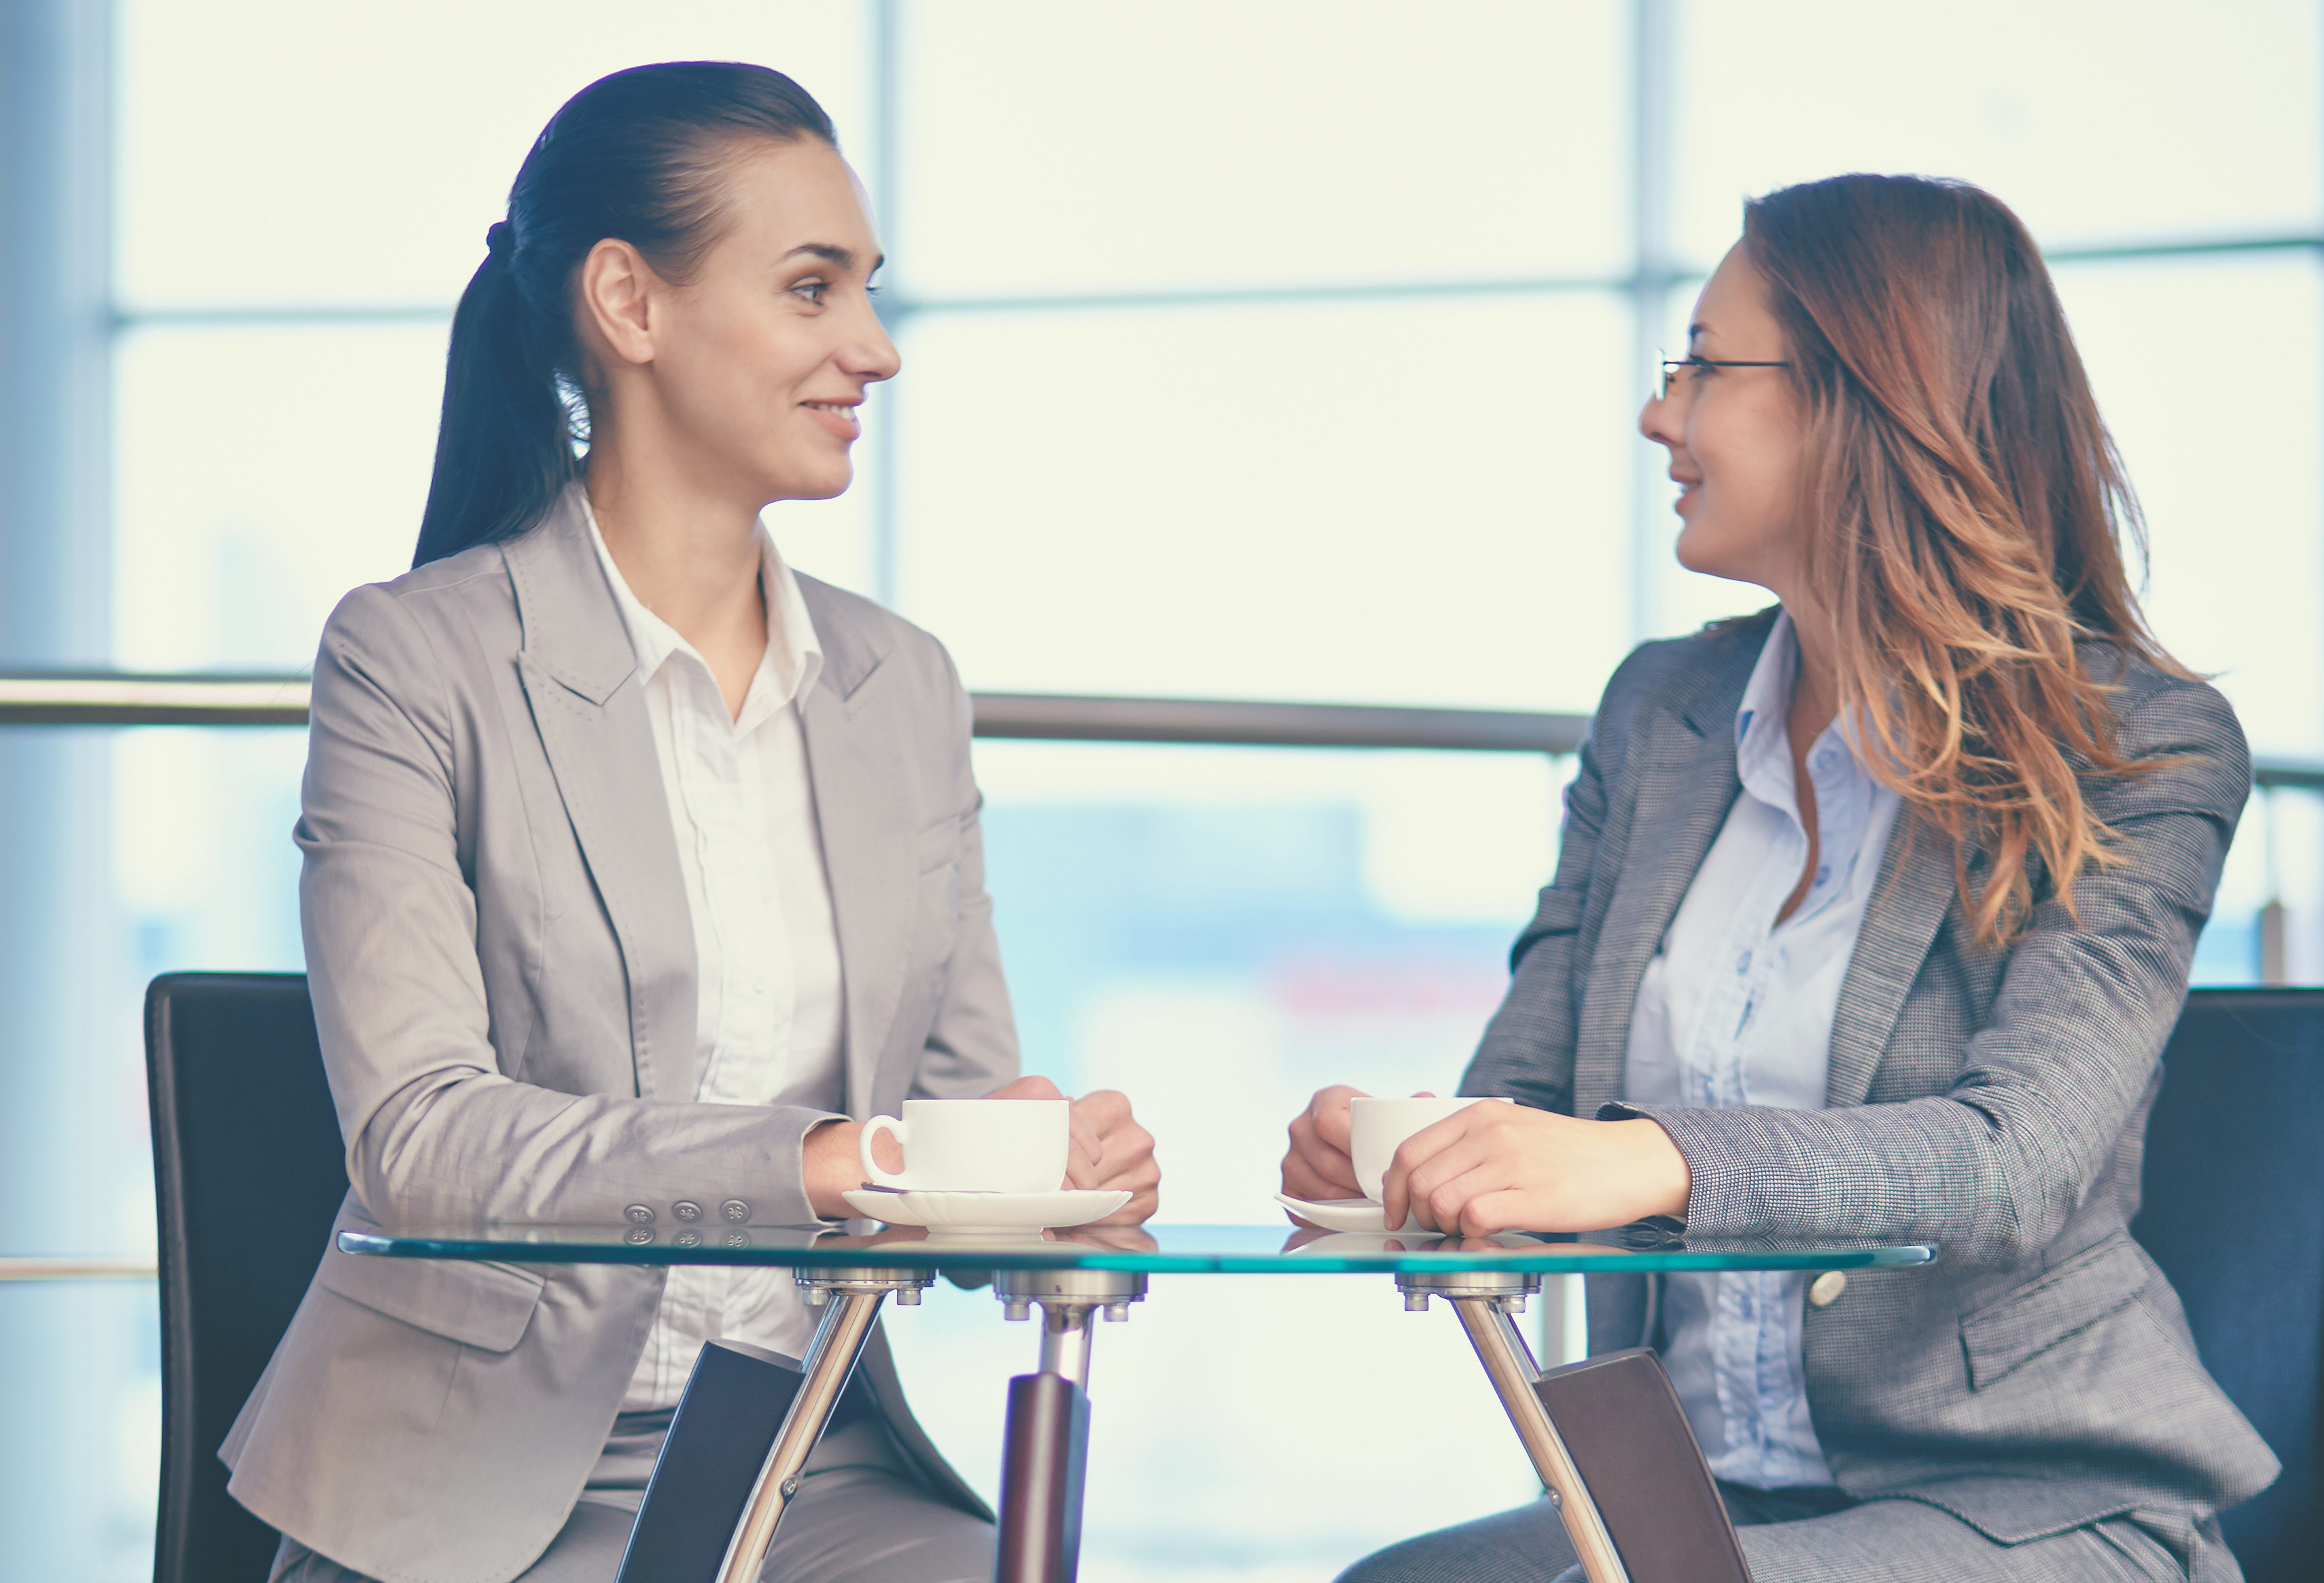 business women job interview coffee chat